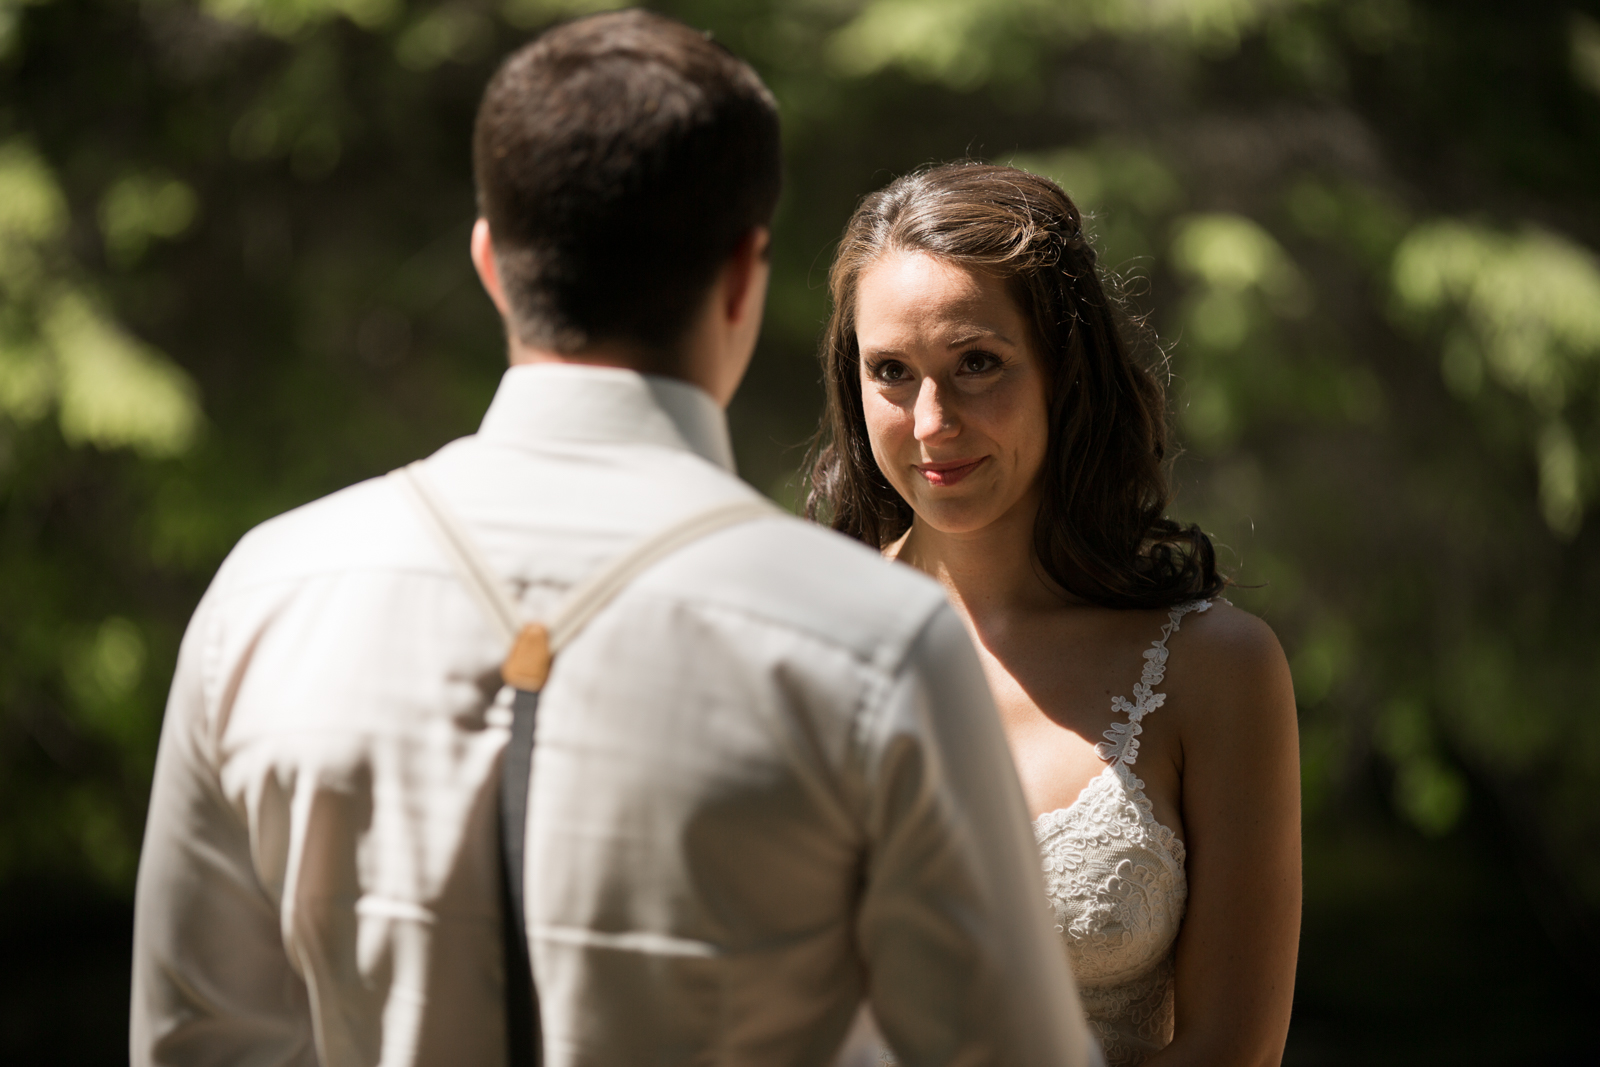 37Andrew_Pavlidis_Photography_Jess_and_Tristan_Revelstoke_Elopement_Calgary_Wedding_Photographer-8025